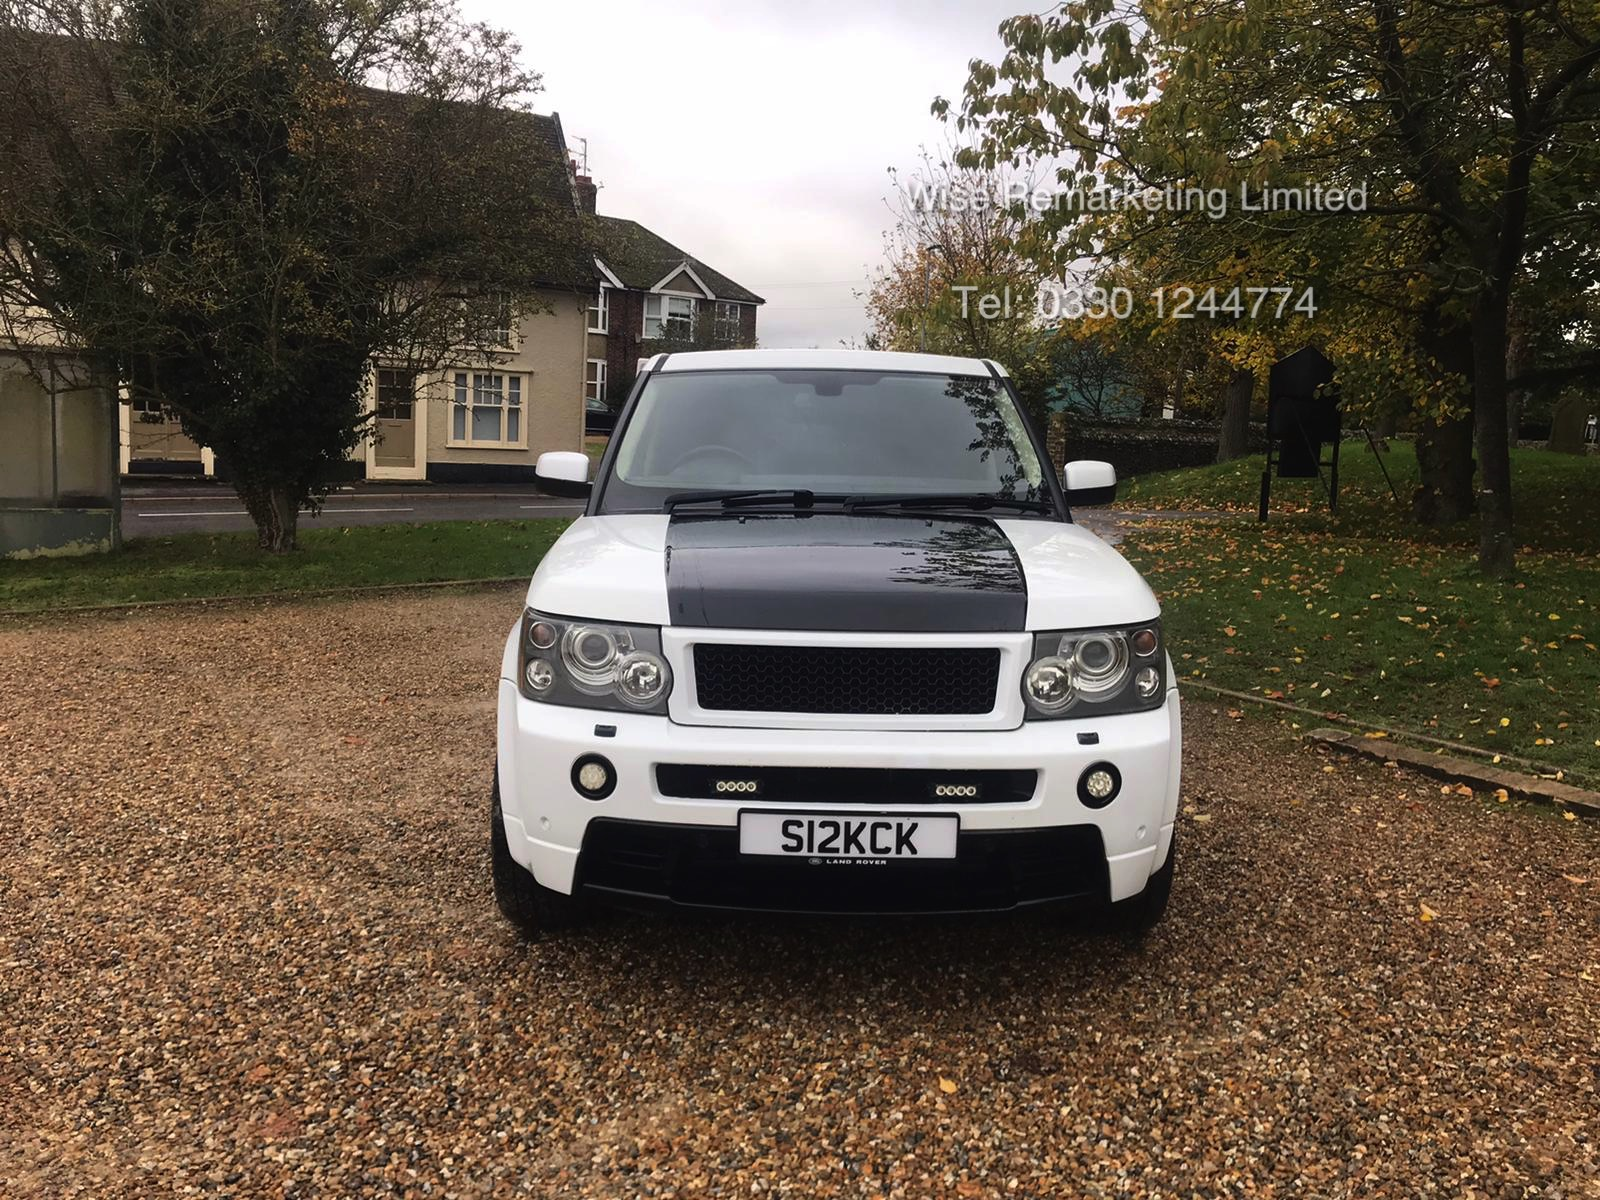 Lot 5 - Range Rover Sport 2.7 TDV6 HSE Auto (2007) *OVERFINCH* (RARE) Full Leather - Sat Nav - Massive Spec